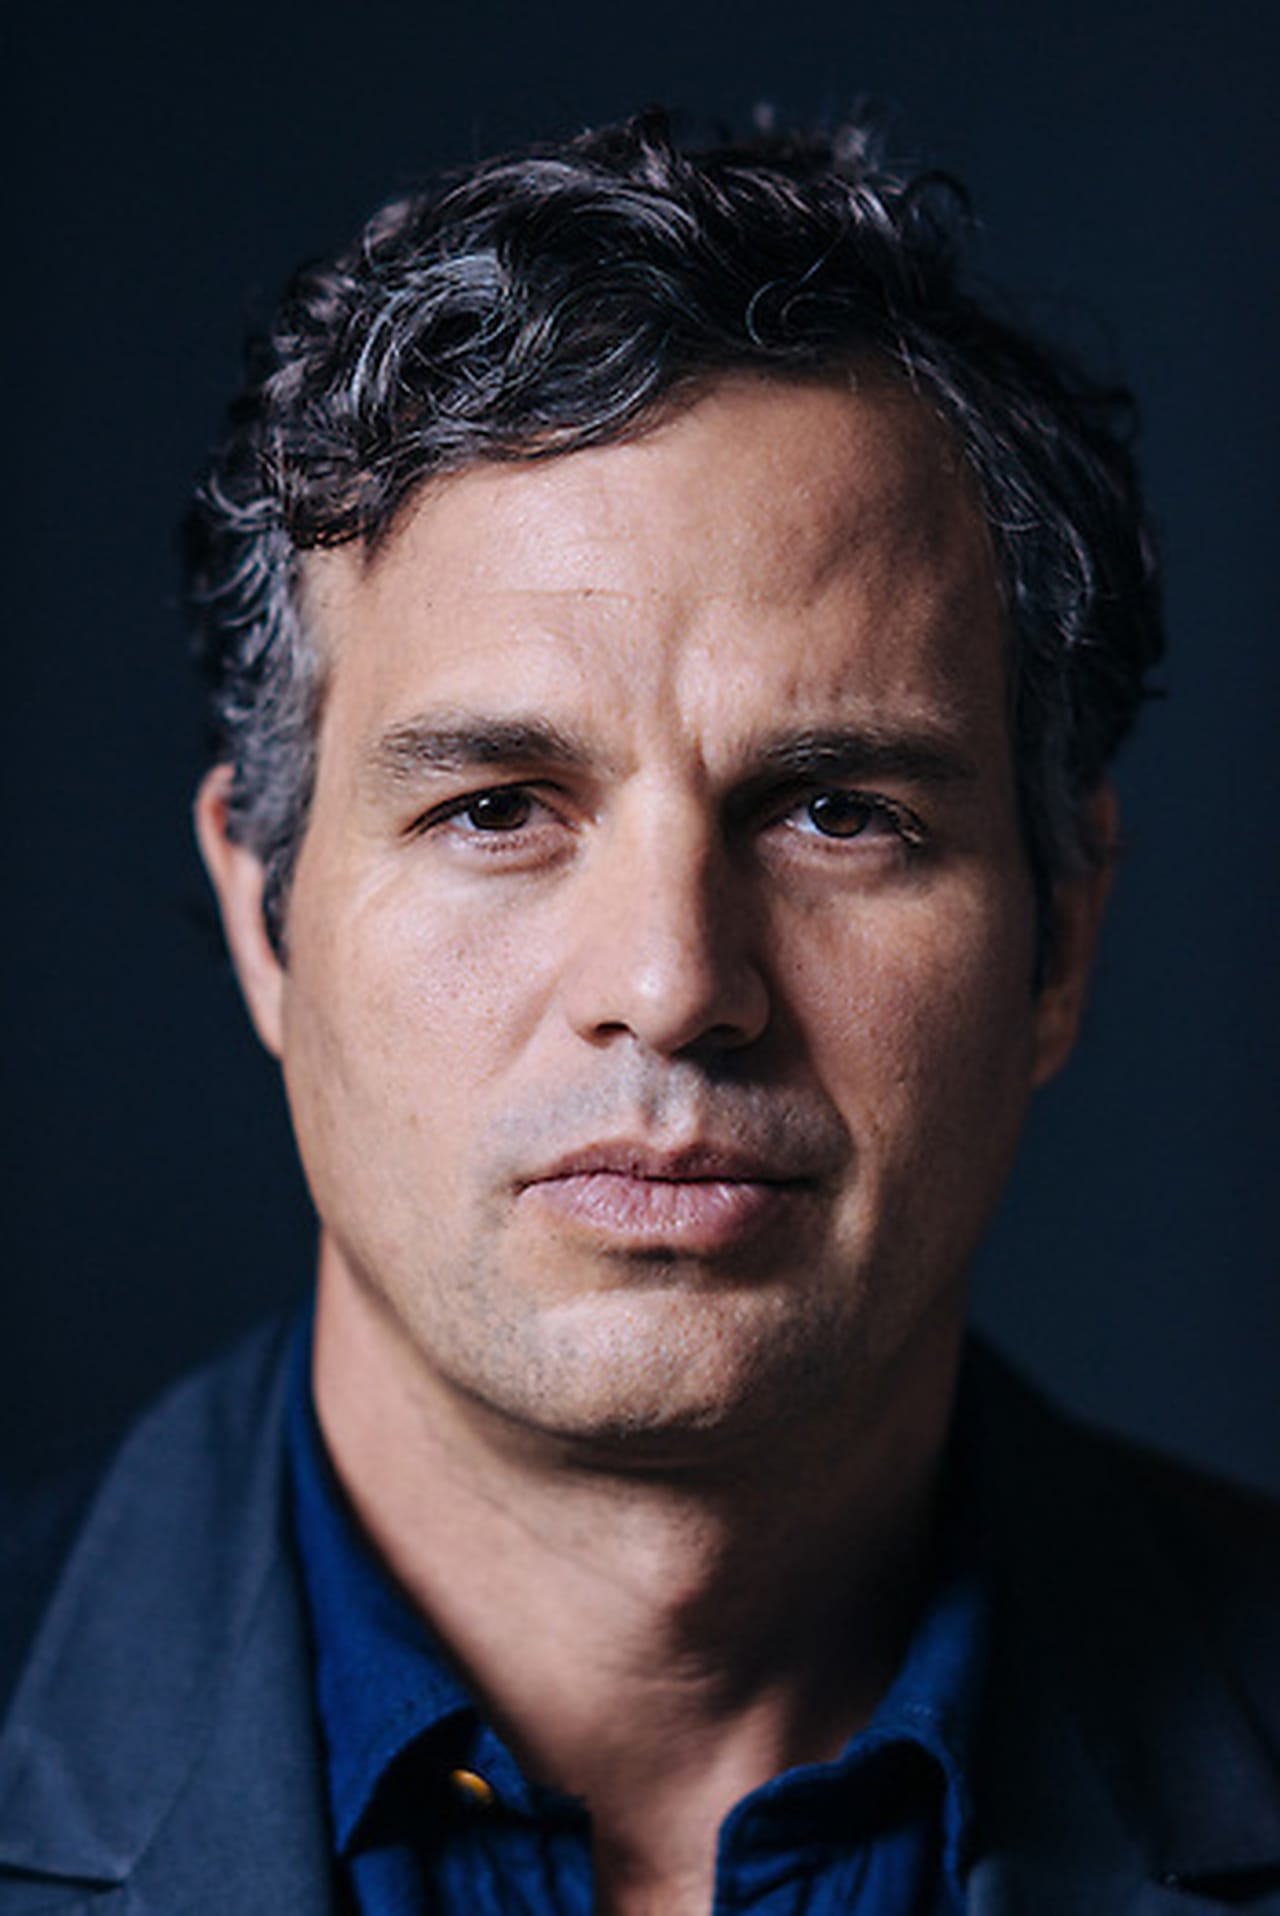 Mark Ruffalo isBruce Banner / The Hulk